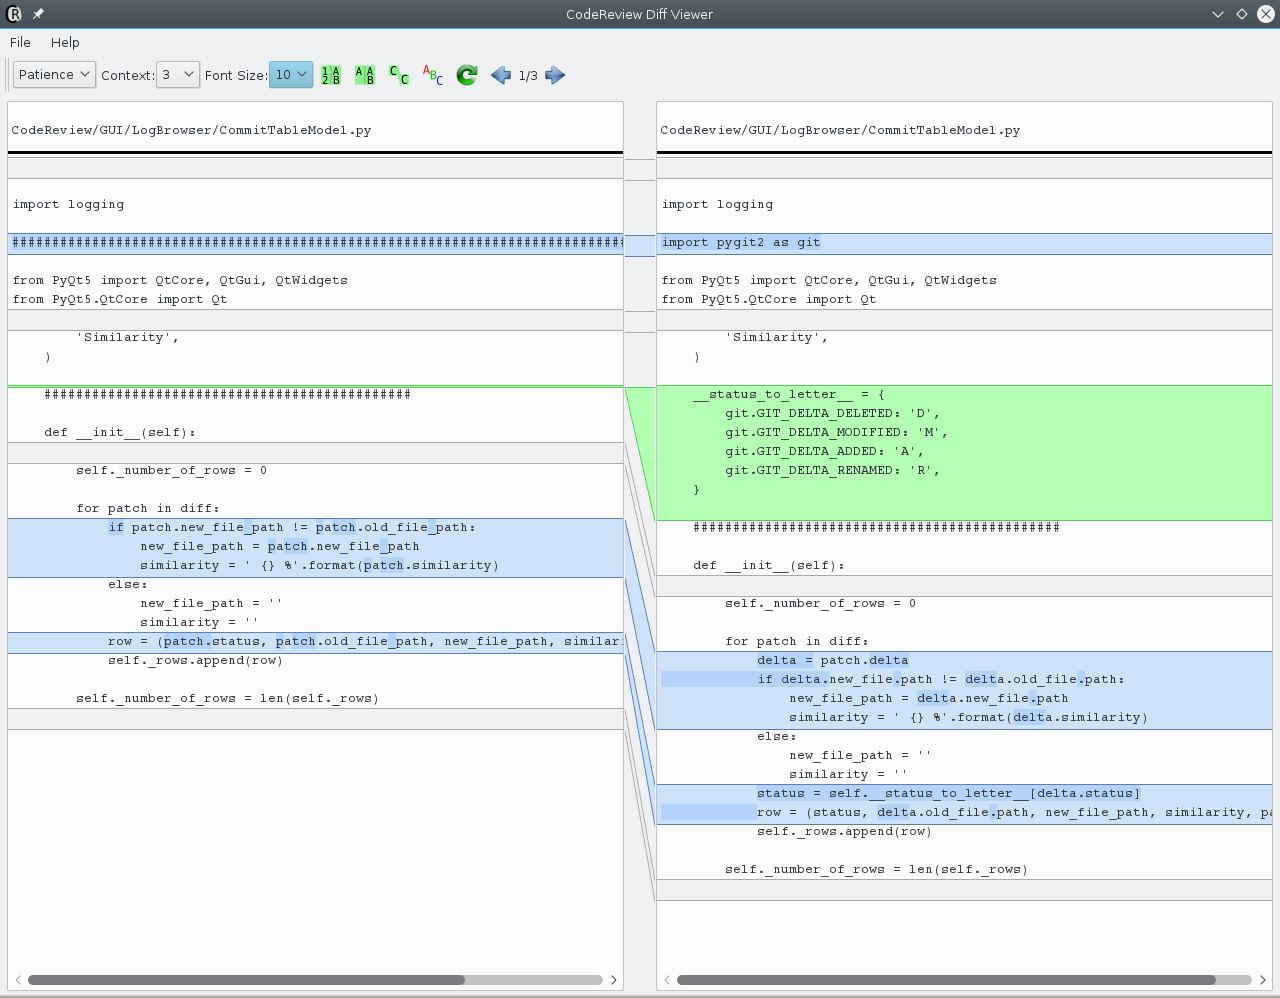 GitHub - FabriceSalvaire/CodeReview: CodeReview is a Git GUI